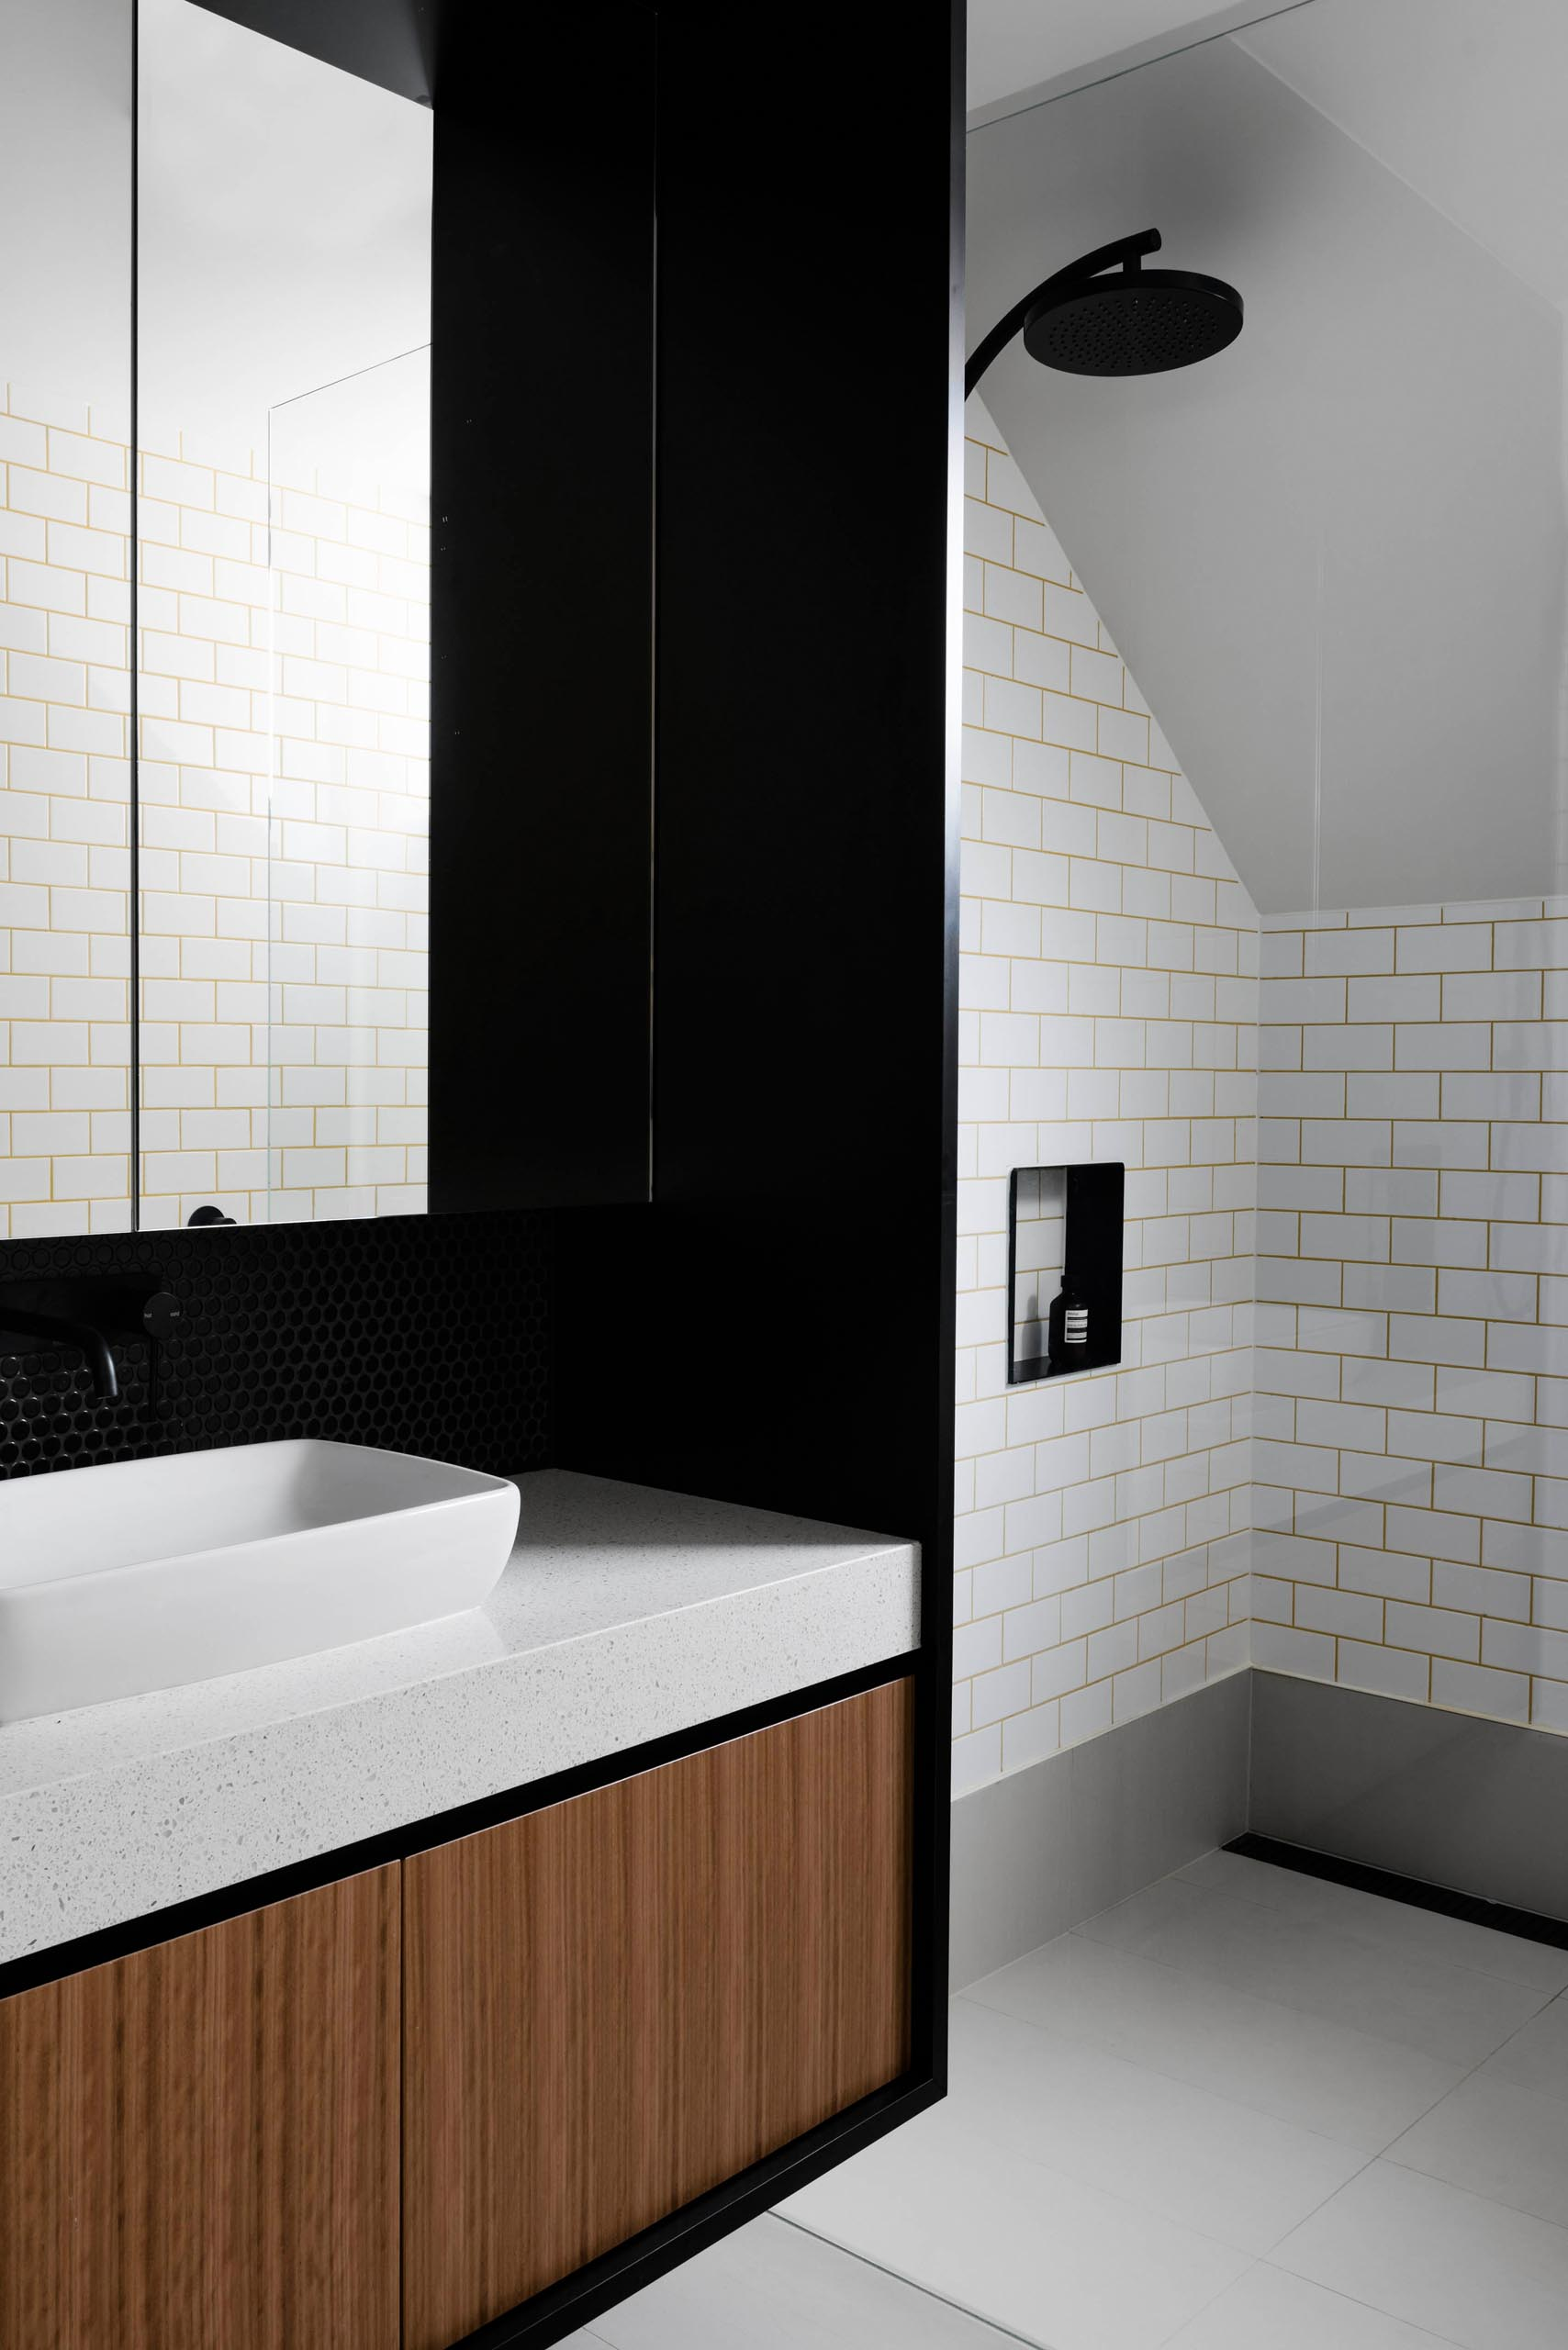 This modern bathroom has a black mirror/vanity surround and black-lined shower niche.